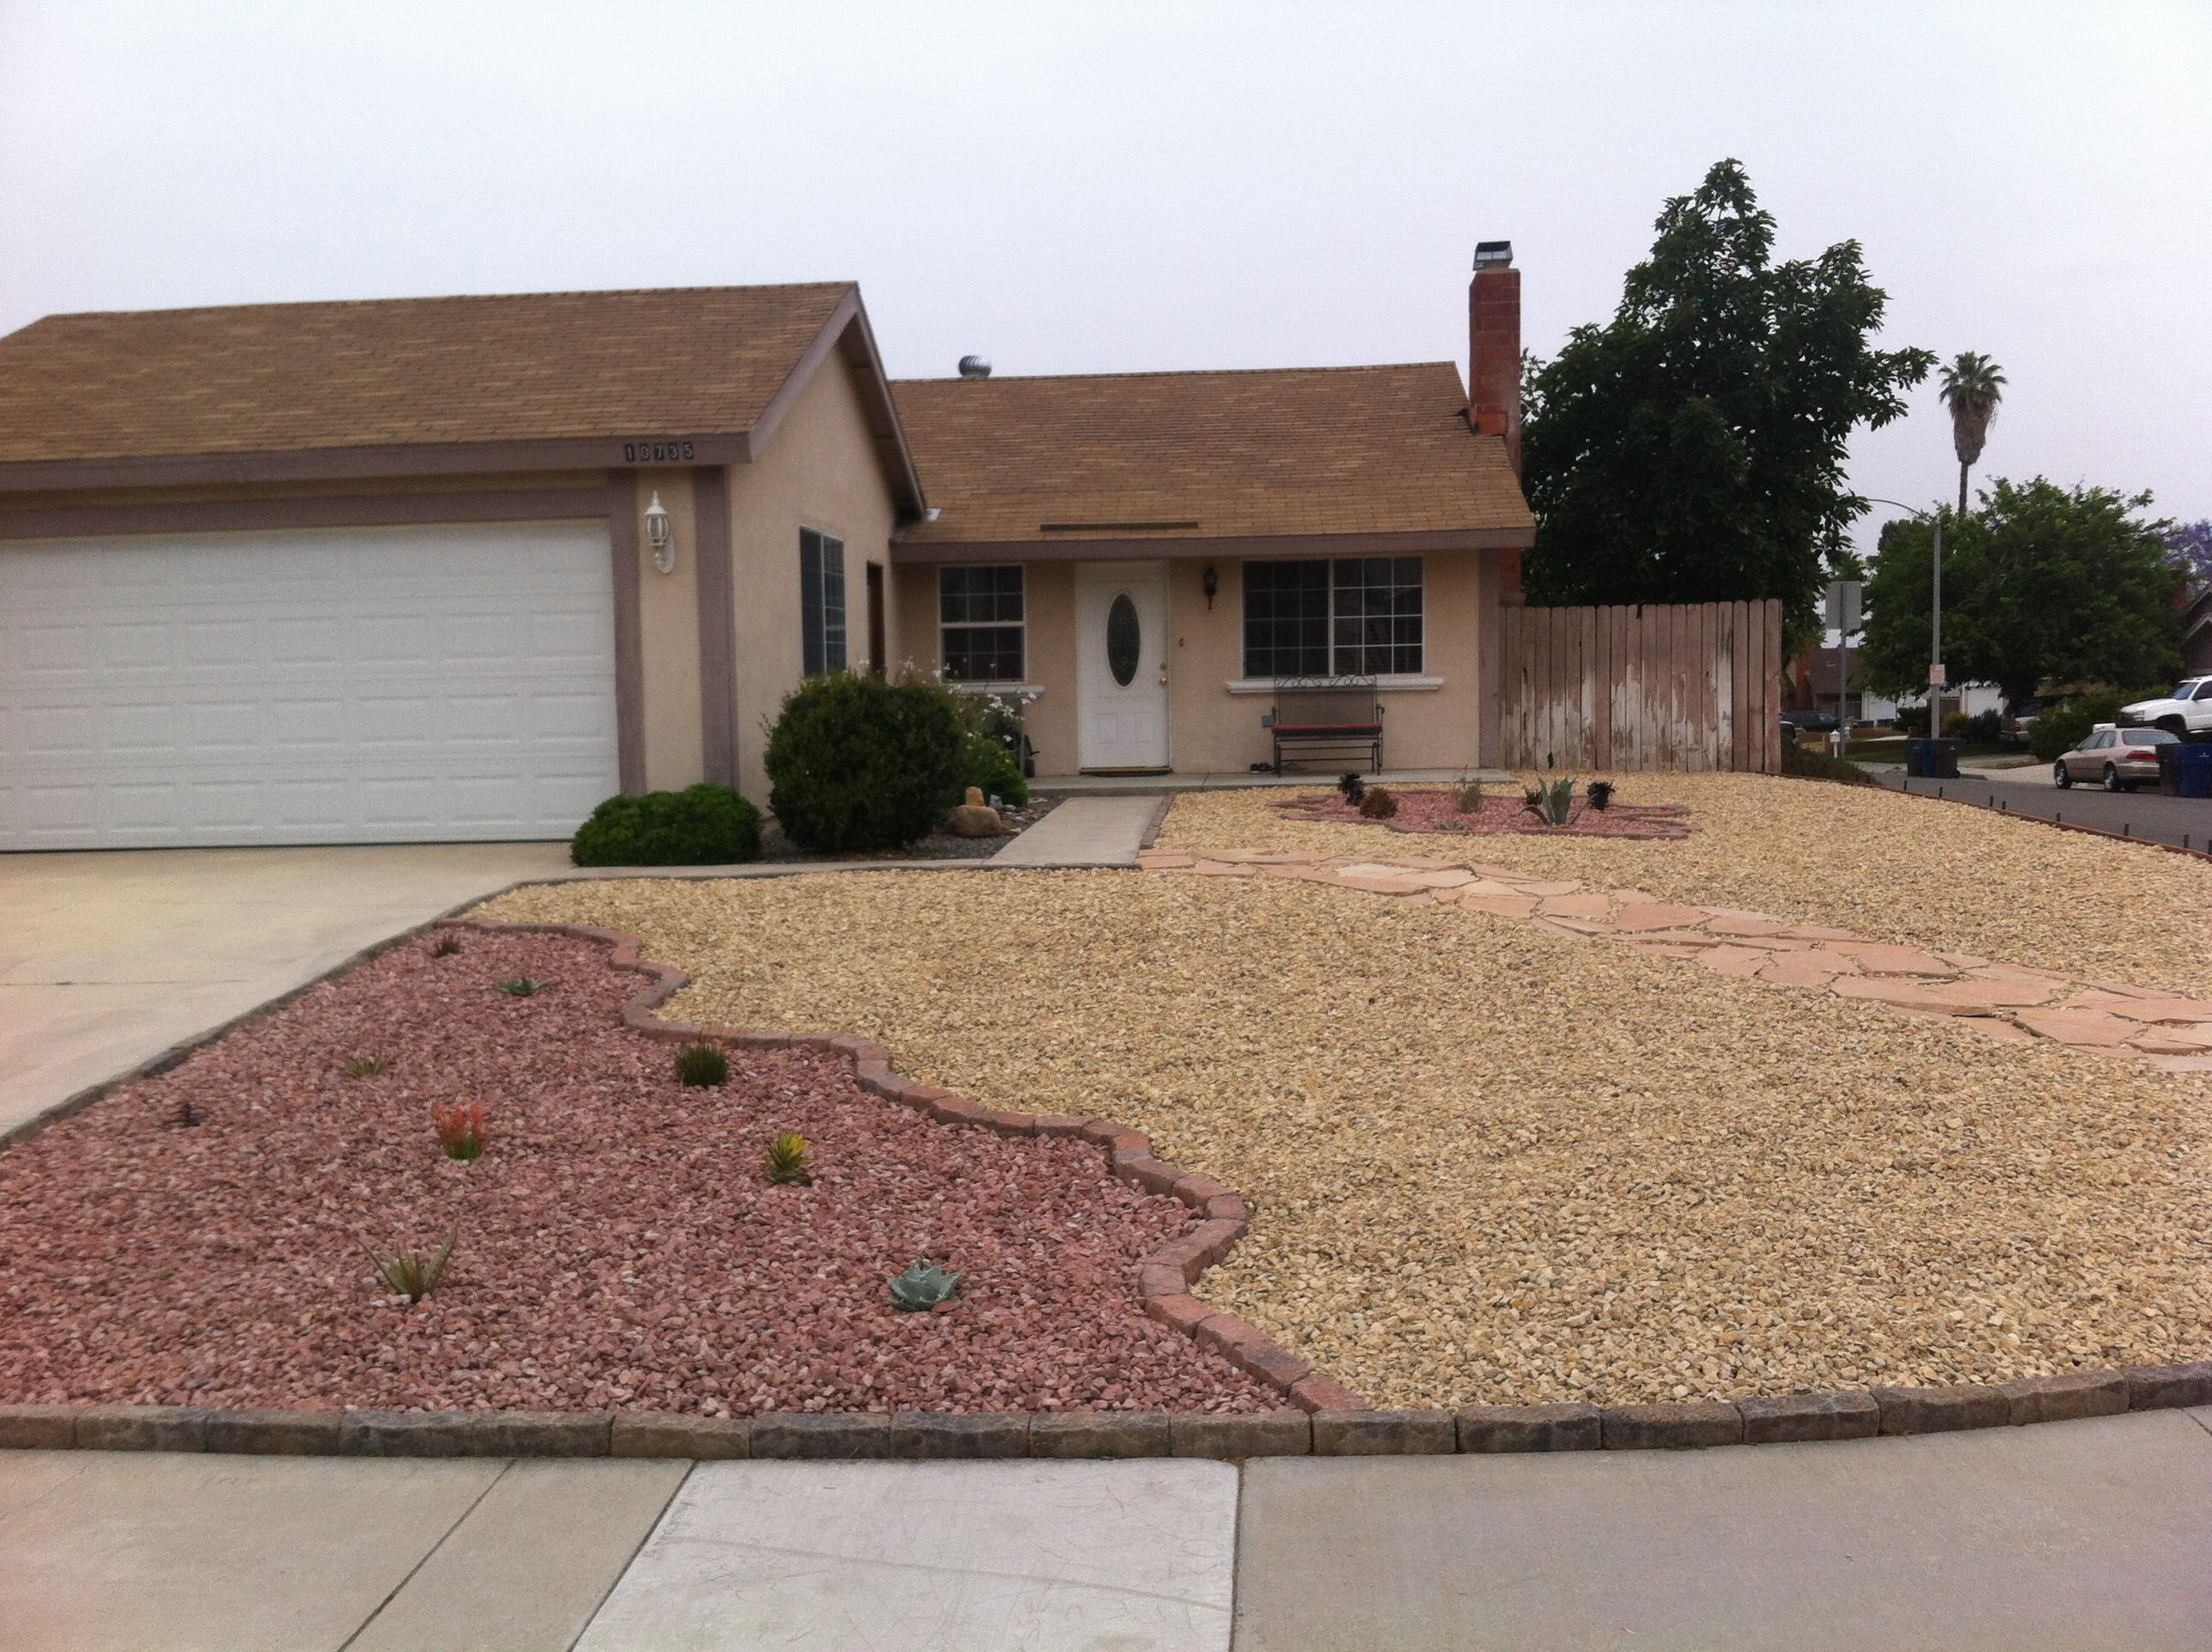 Desert scape front yard with drought tolerant plants and rock ...